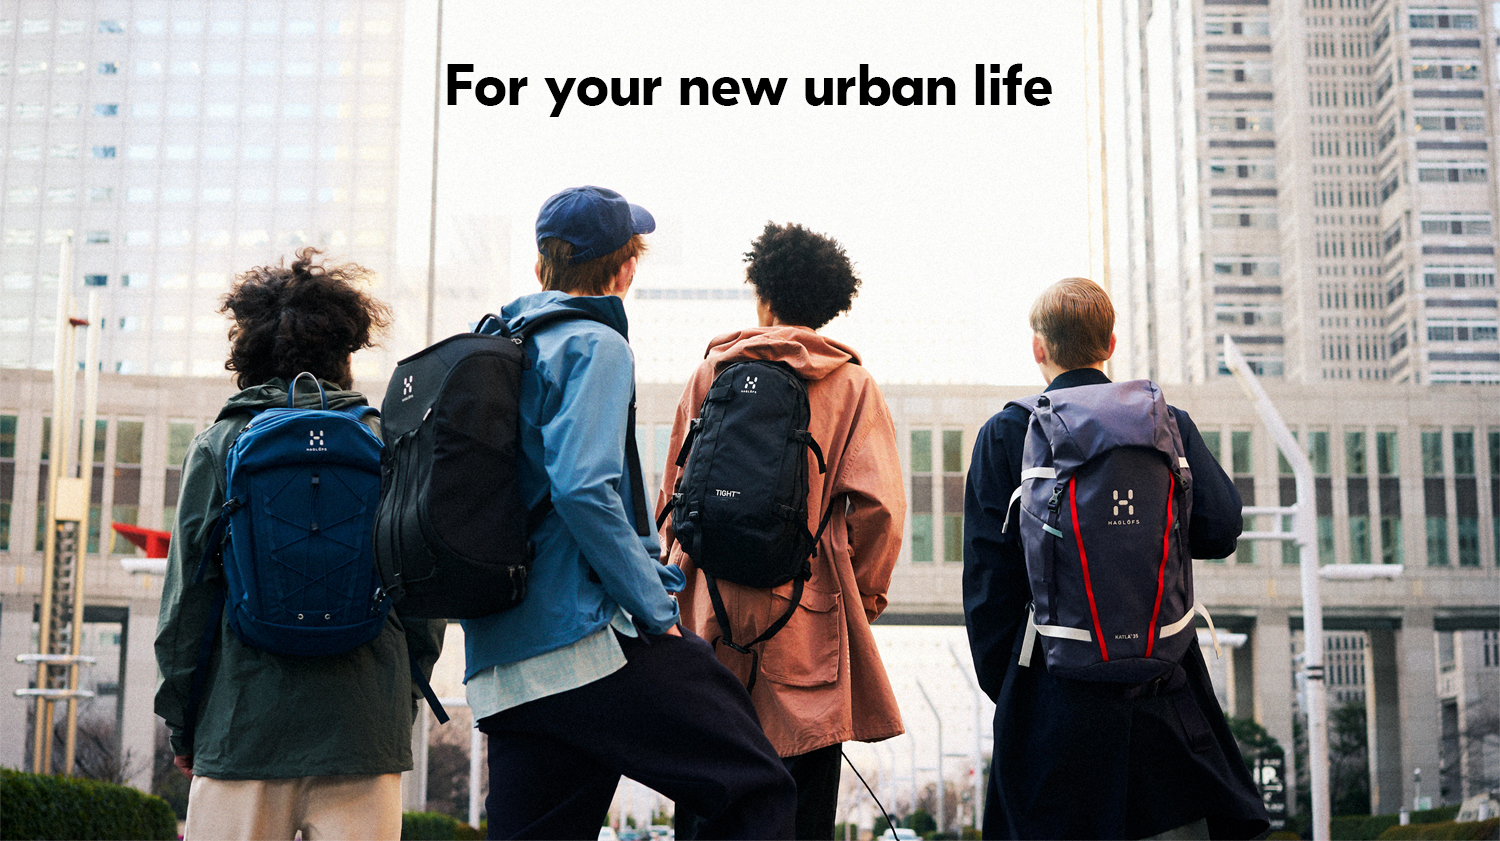 For your new urban life.